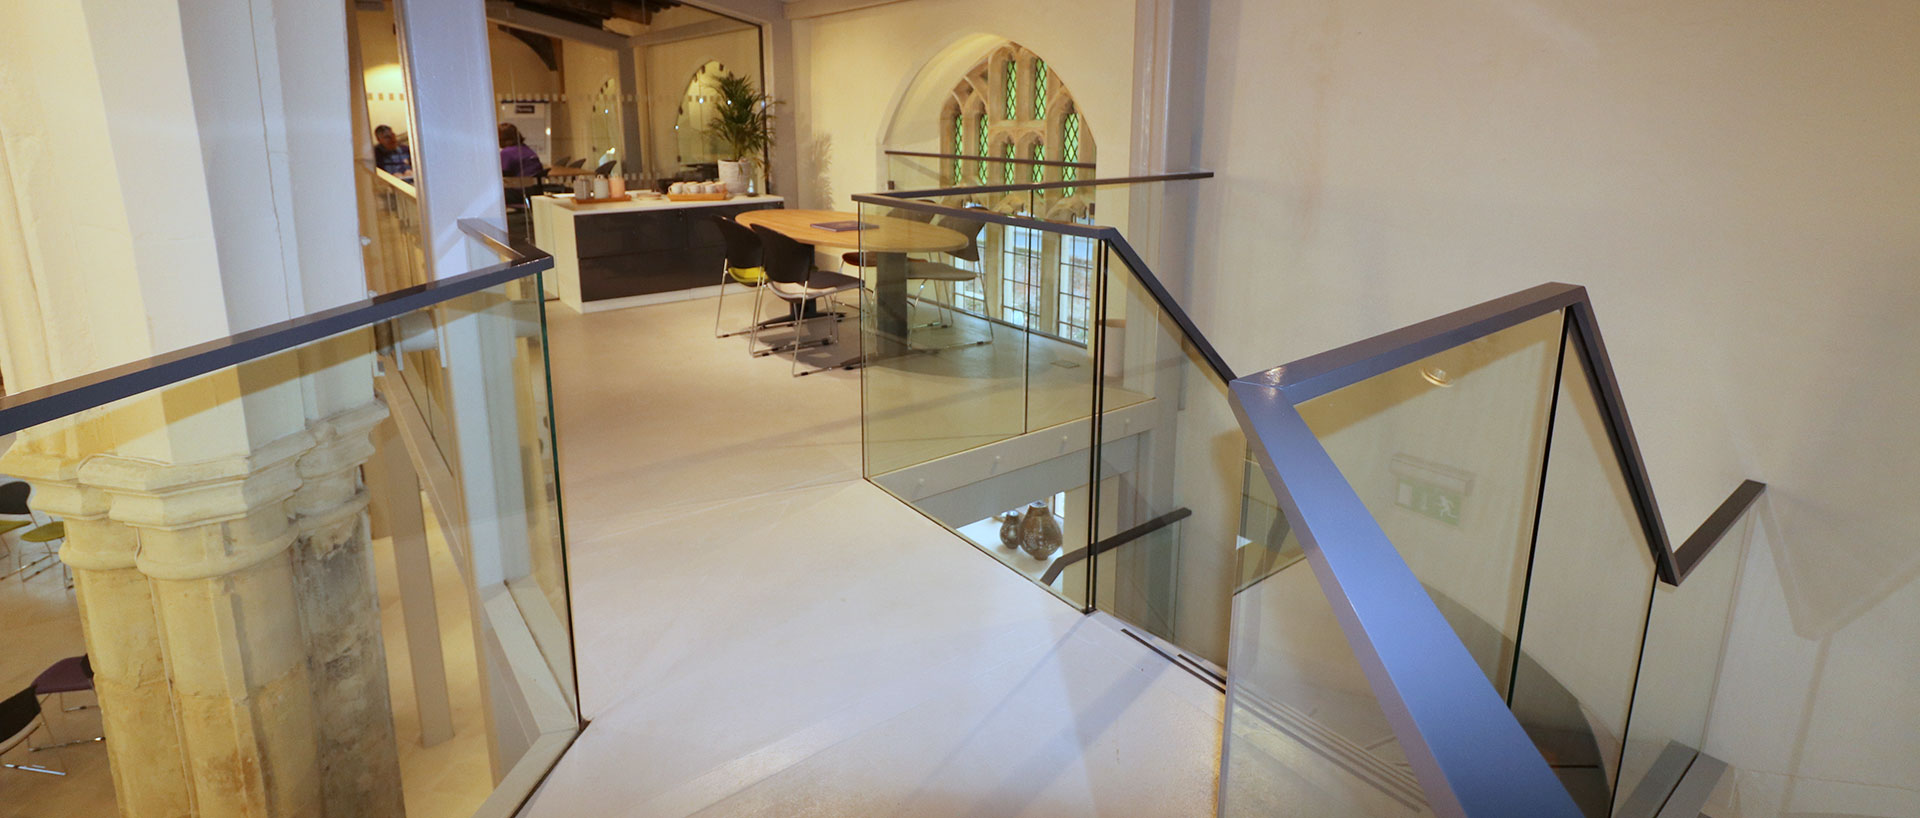 Ion Glass Installs Glazed Balustrades to St. Mary's on the Quay